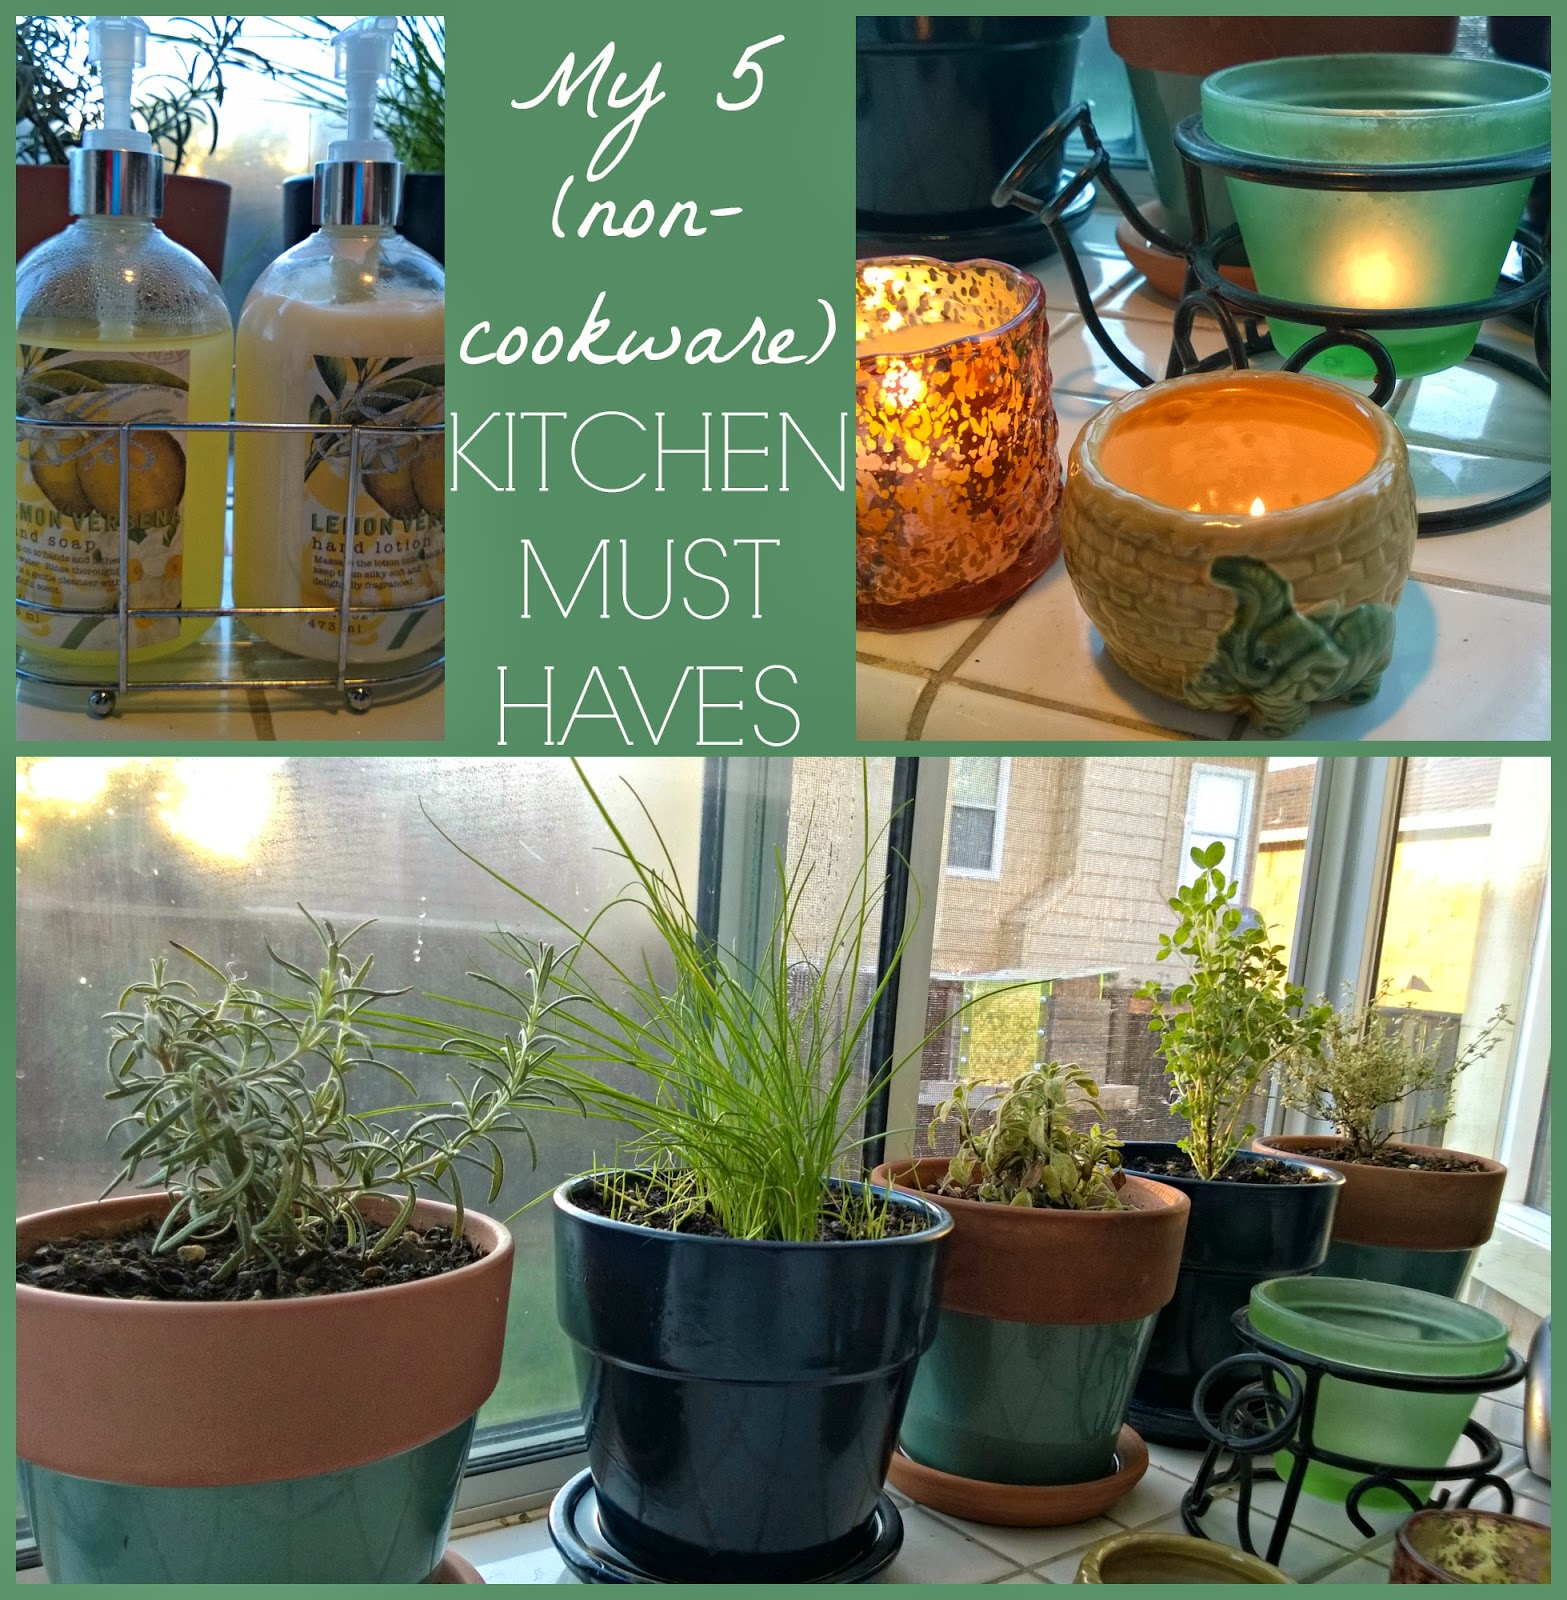 5 Dream Kitchen Must Haves: Creative Mama, Messy House: My Top 5 (non-cookware